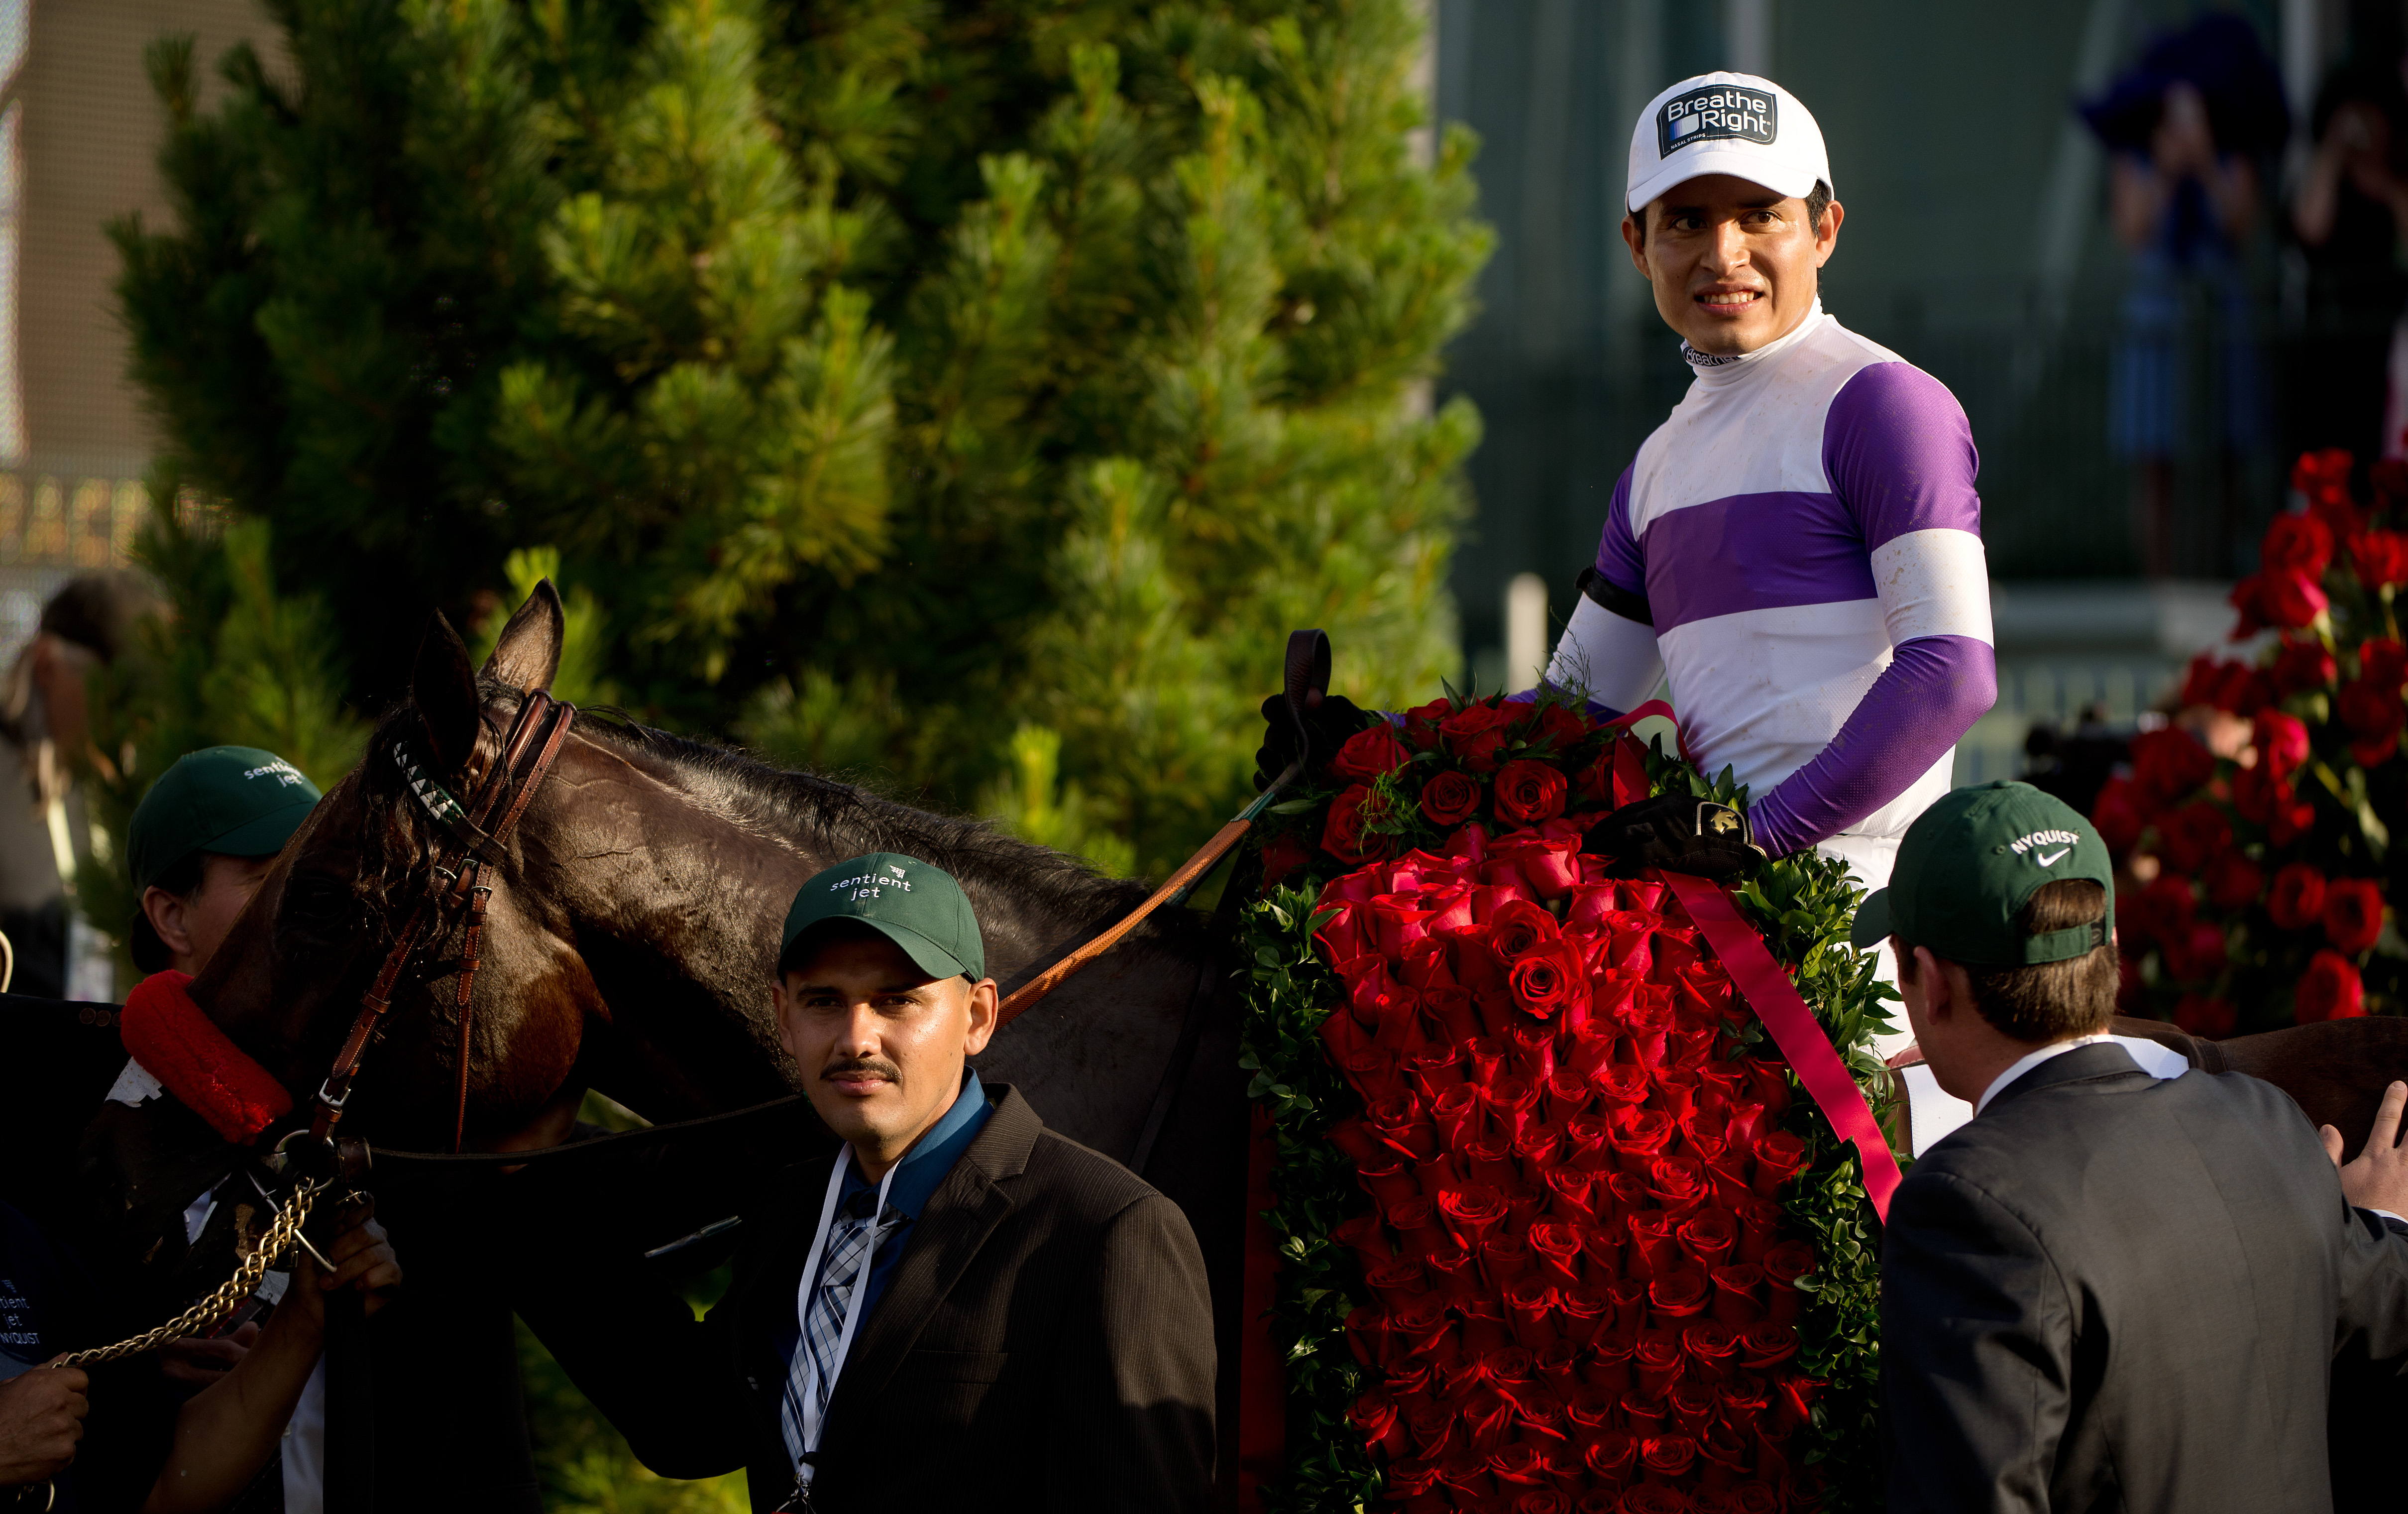 Mario Guitierrez is now two-for-two in the Kentucky Derby, having won on Saturday and in 2012 aboard I'll Have Another.